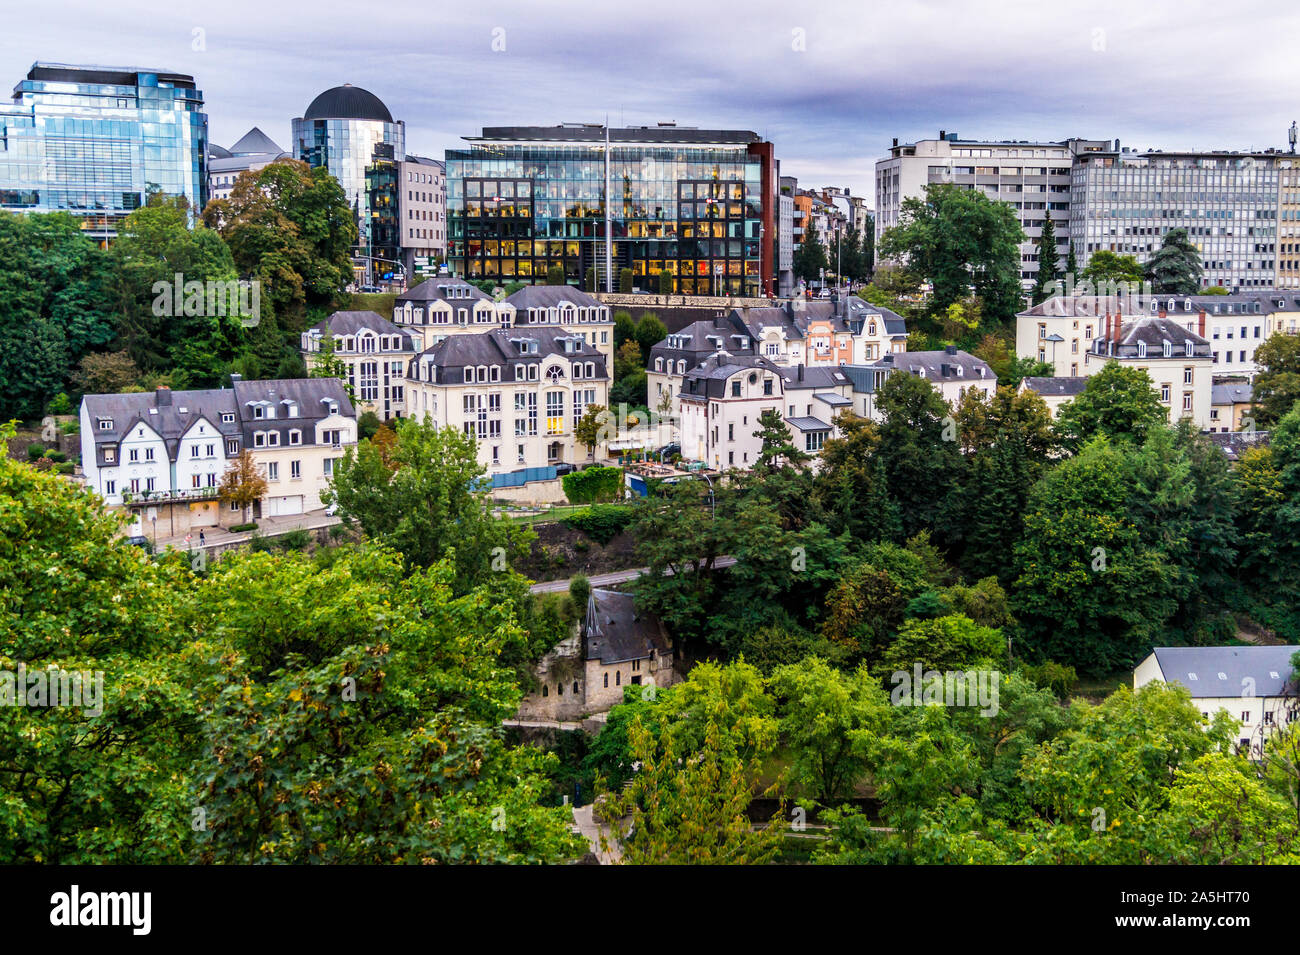 st-quirin-chapel-and-modern-buildings-luxembourg-city-grand-duchy-of-luxembourg-2A5HT70.jpg